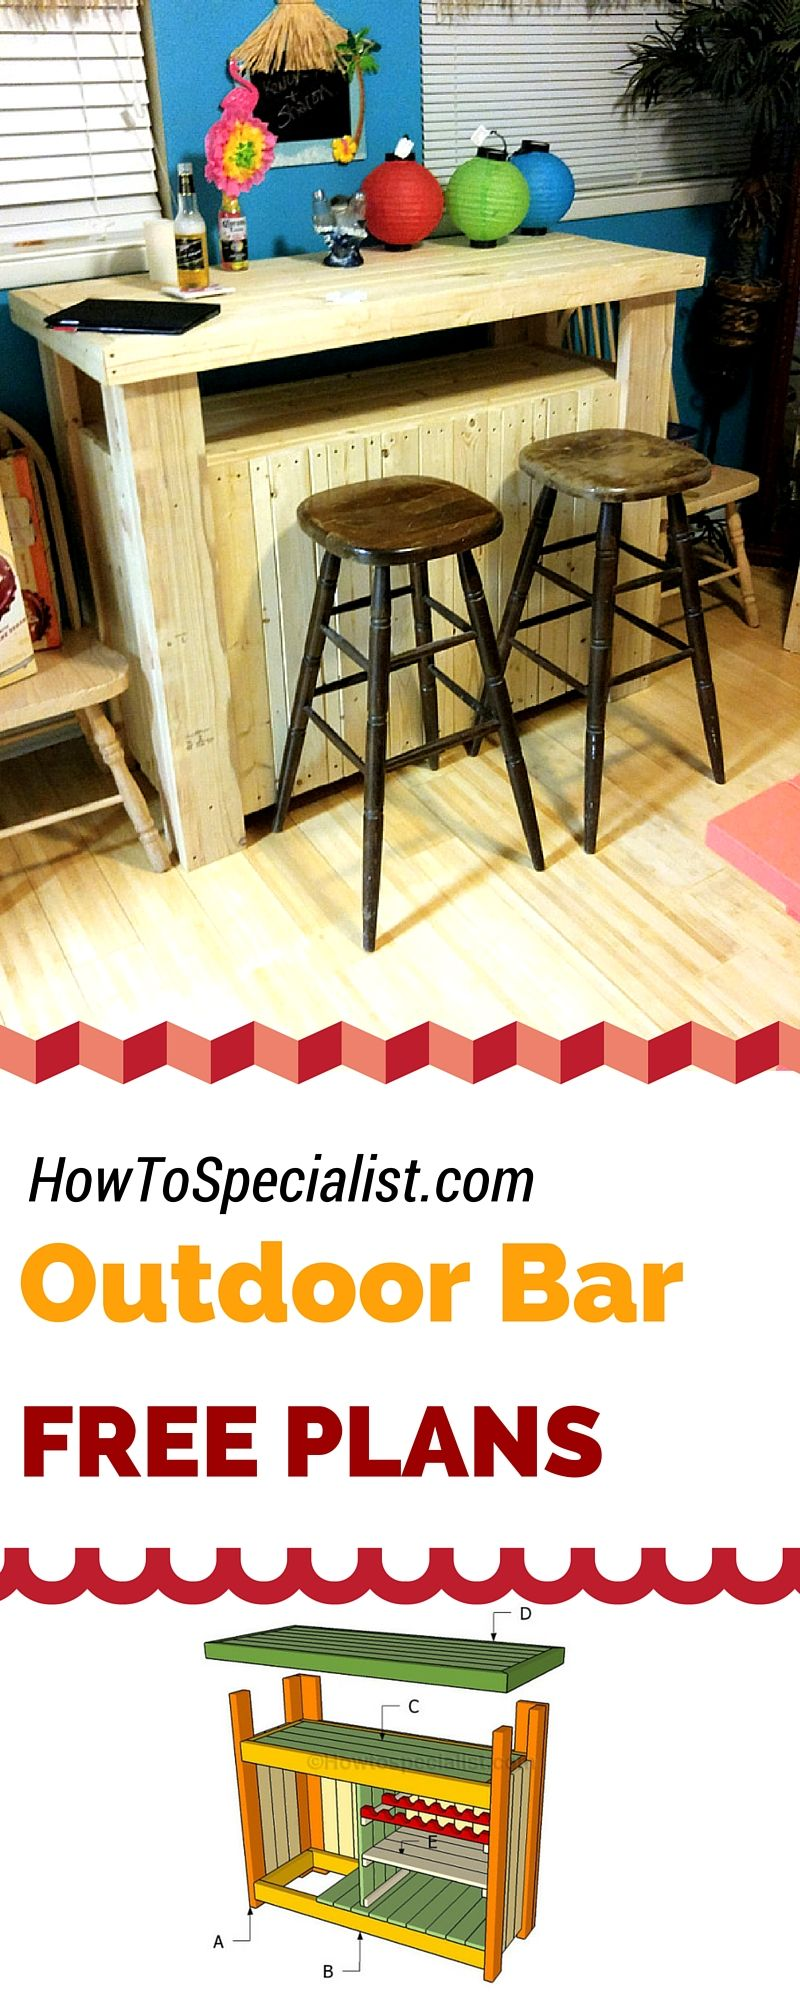 Diy bar plans howtospecialist how to build step by step diy plans - How To Build An Outdoor Bar Free Plans For You To Build A Wooden Bar Using My Step By Step Instructions And Diagrams Diy Bar Howtospecialist C